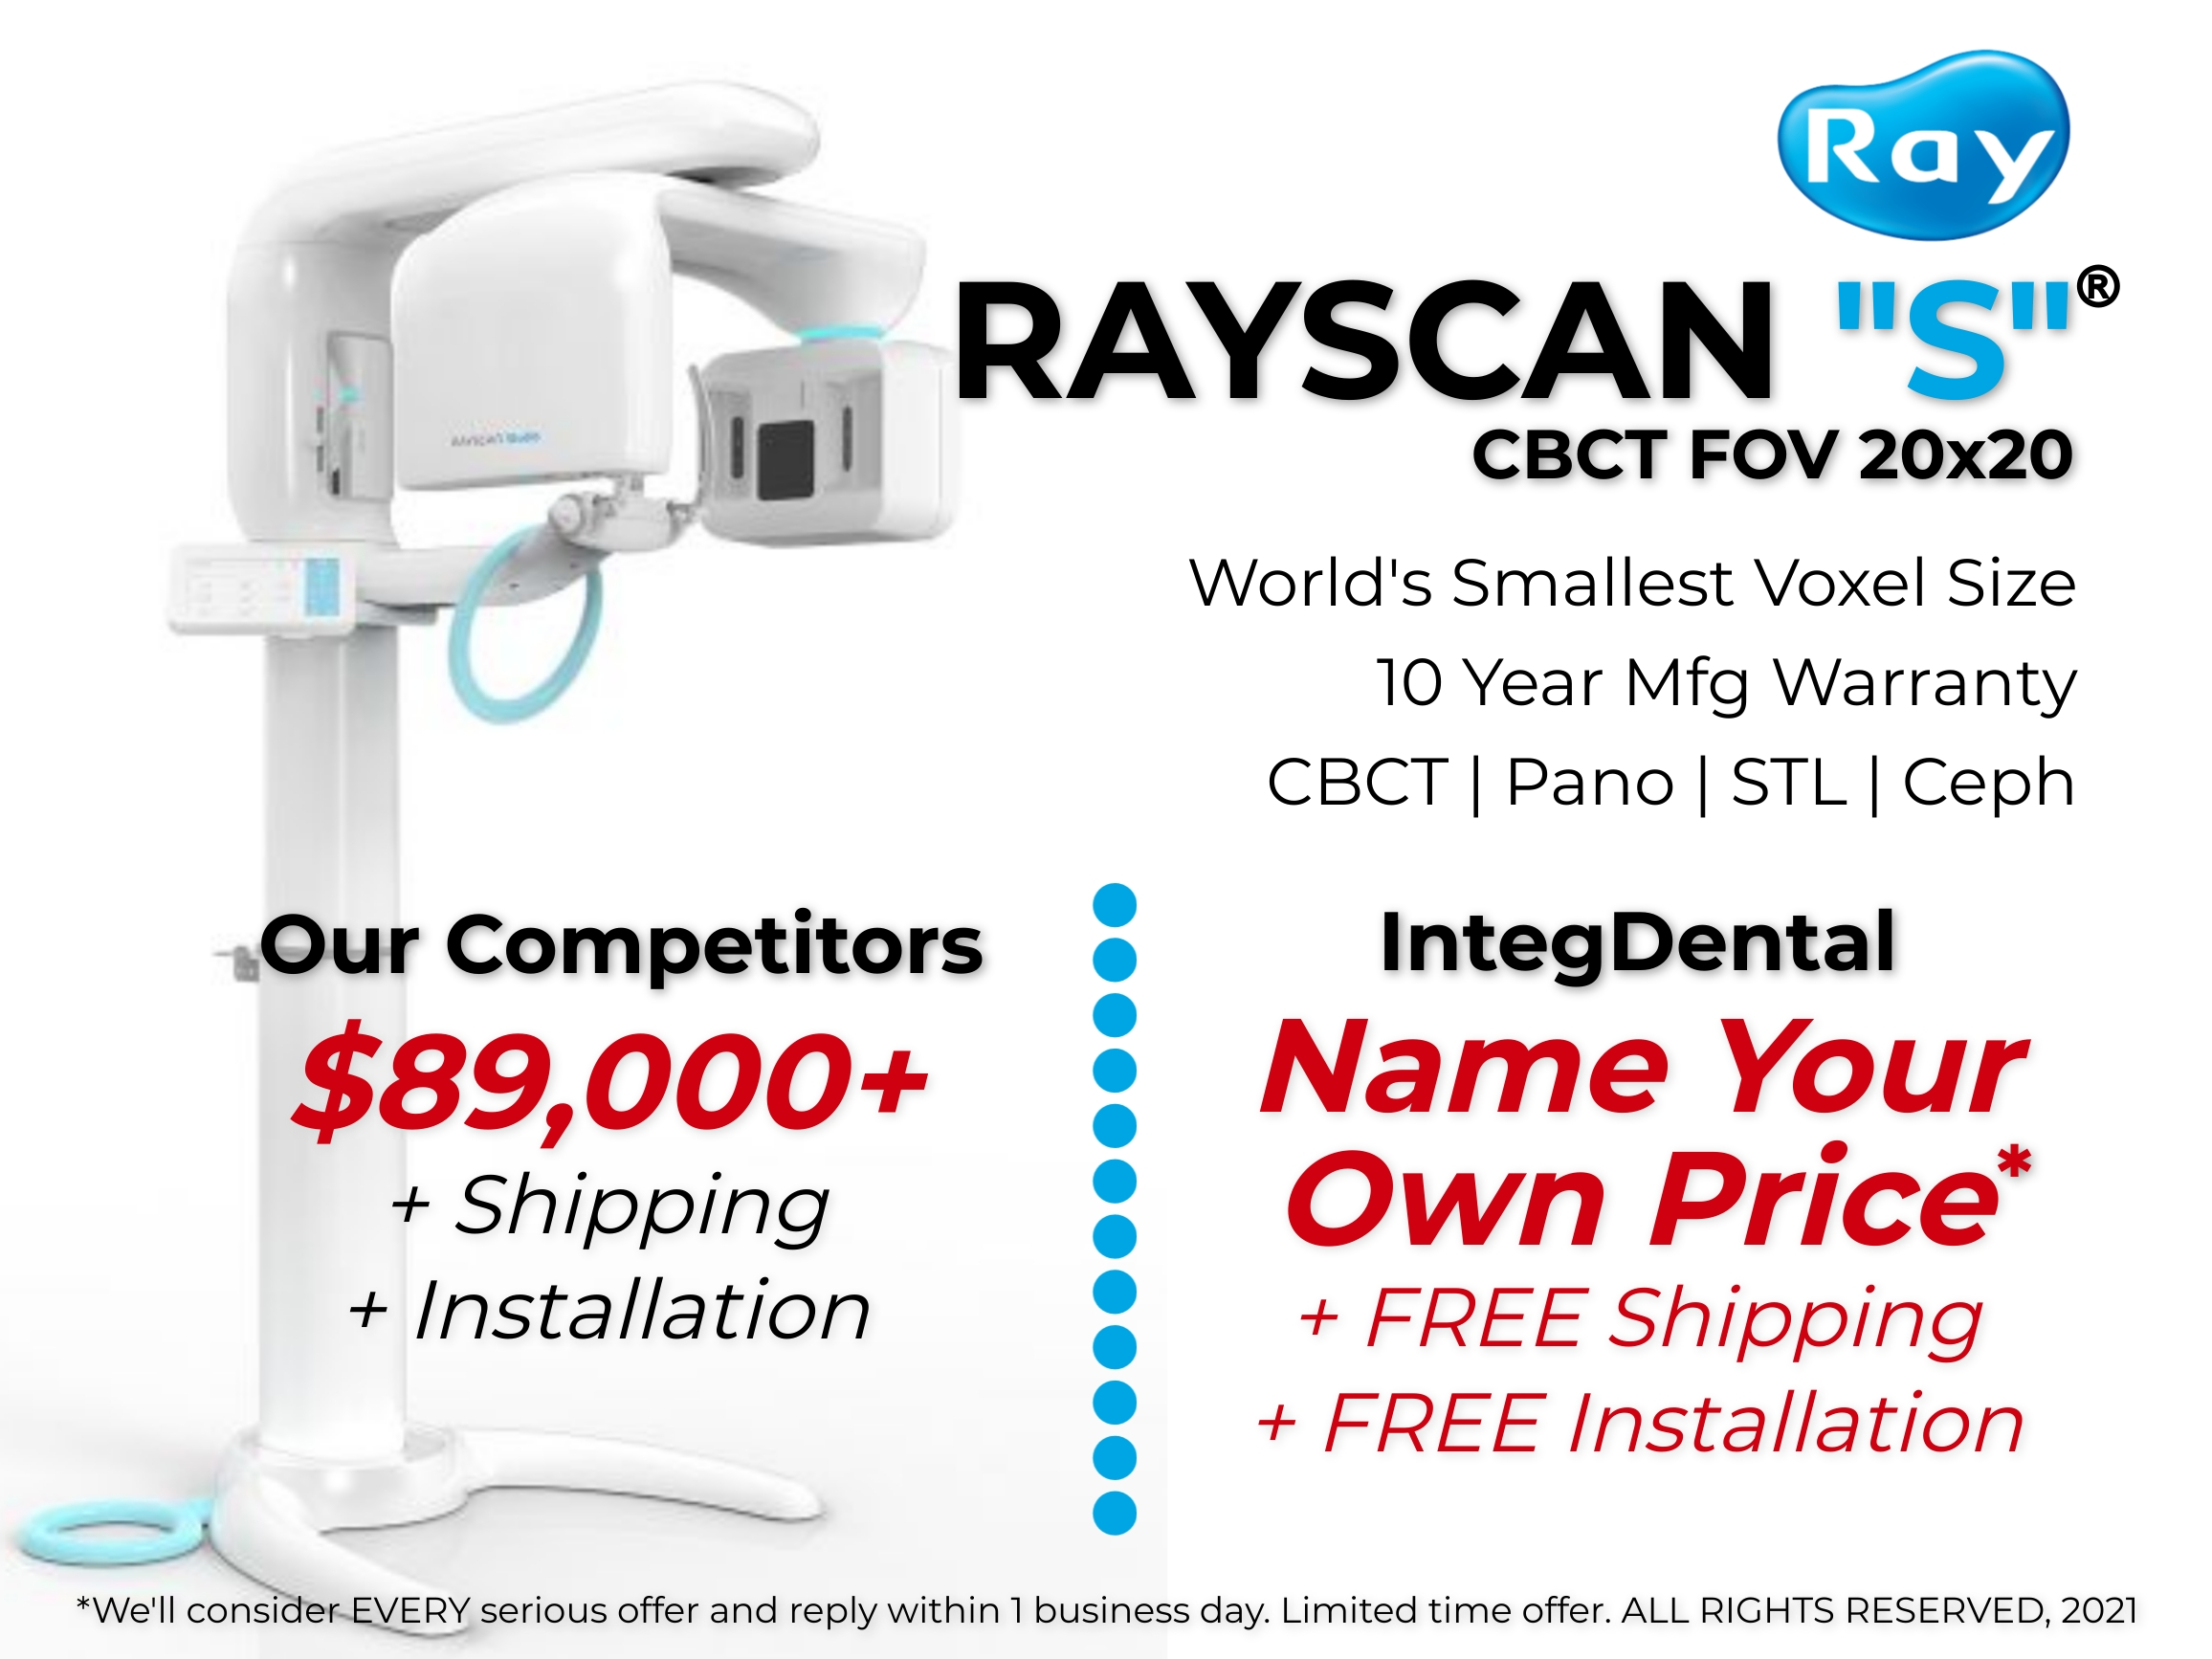 "ray, rayscan, rayamerica, cbct, s, ""s"", rayscans, rayscan s, model, model s, 20x20, fov, airway, implant, tmj, endo, µm, smallest, largest, fastest, cheapest, low, free, best, near me, cbct, x-ray, free installation, free delivery, warranty, 10 years, rayguard, 24/7, 2020, 2021, now, too late"